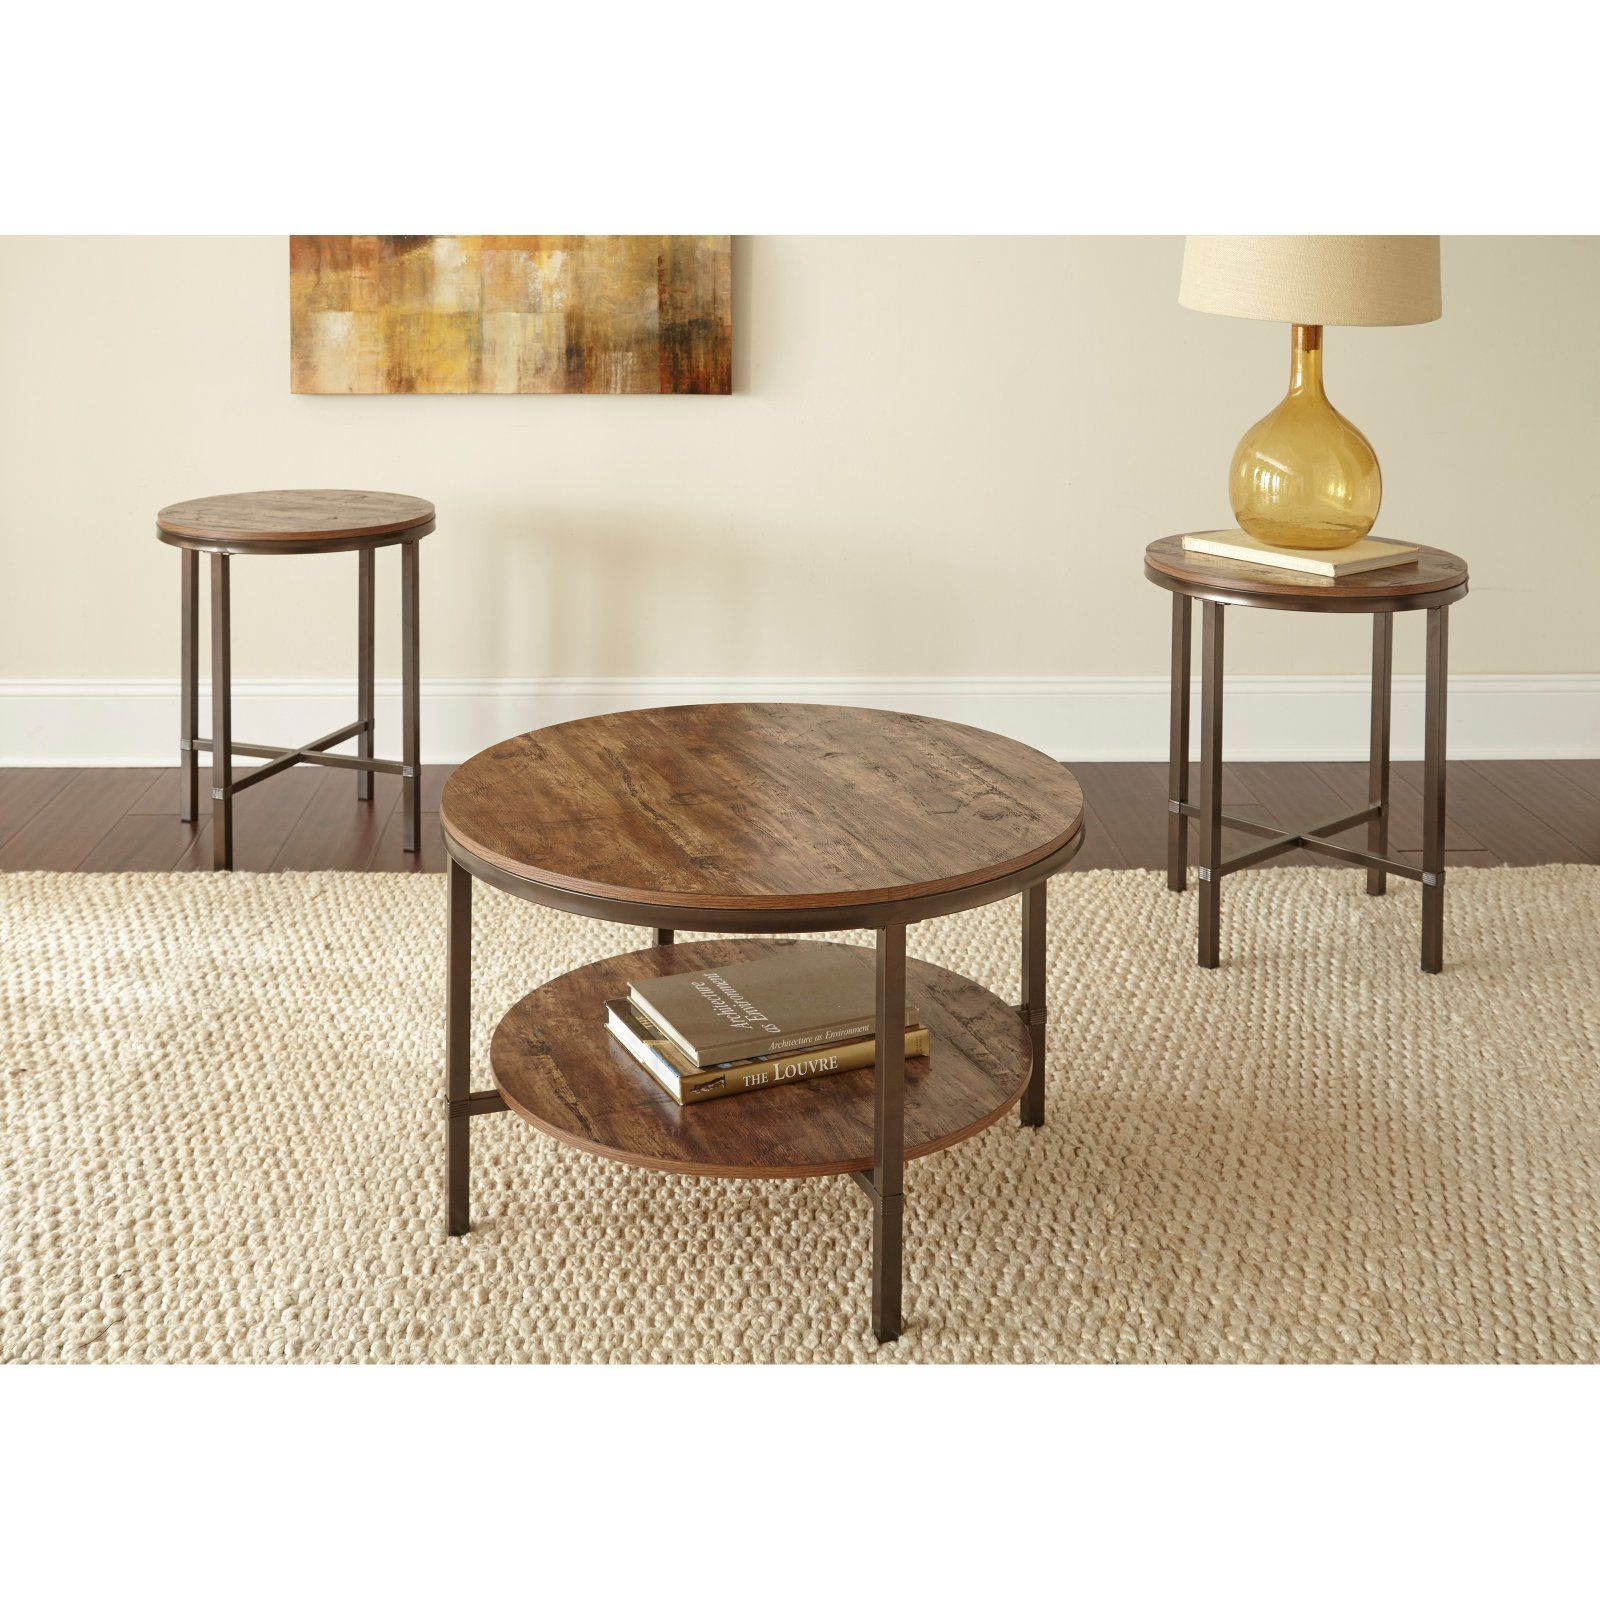 Steve Silver Co Sedona 3 Piece Occasional Coffee Table Set 3 Piece Coffee Table Set Round Coffee Table Sets Coffee Table [ 1600 x 1600 Pixel ]